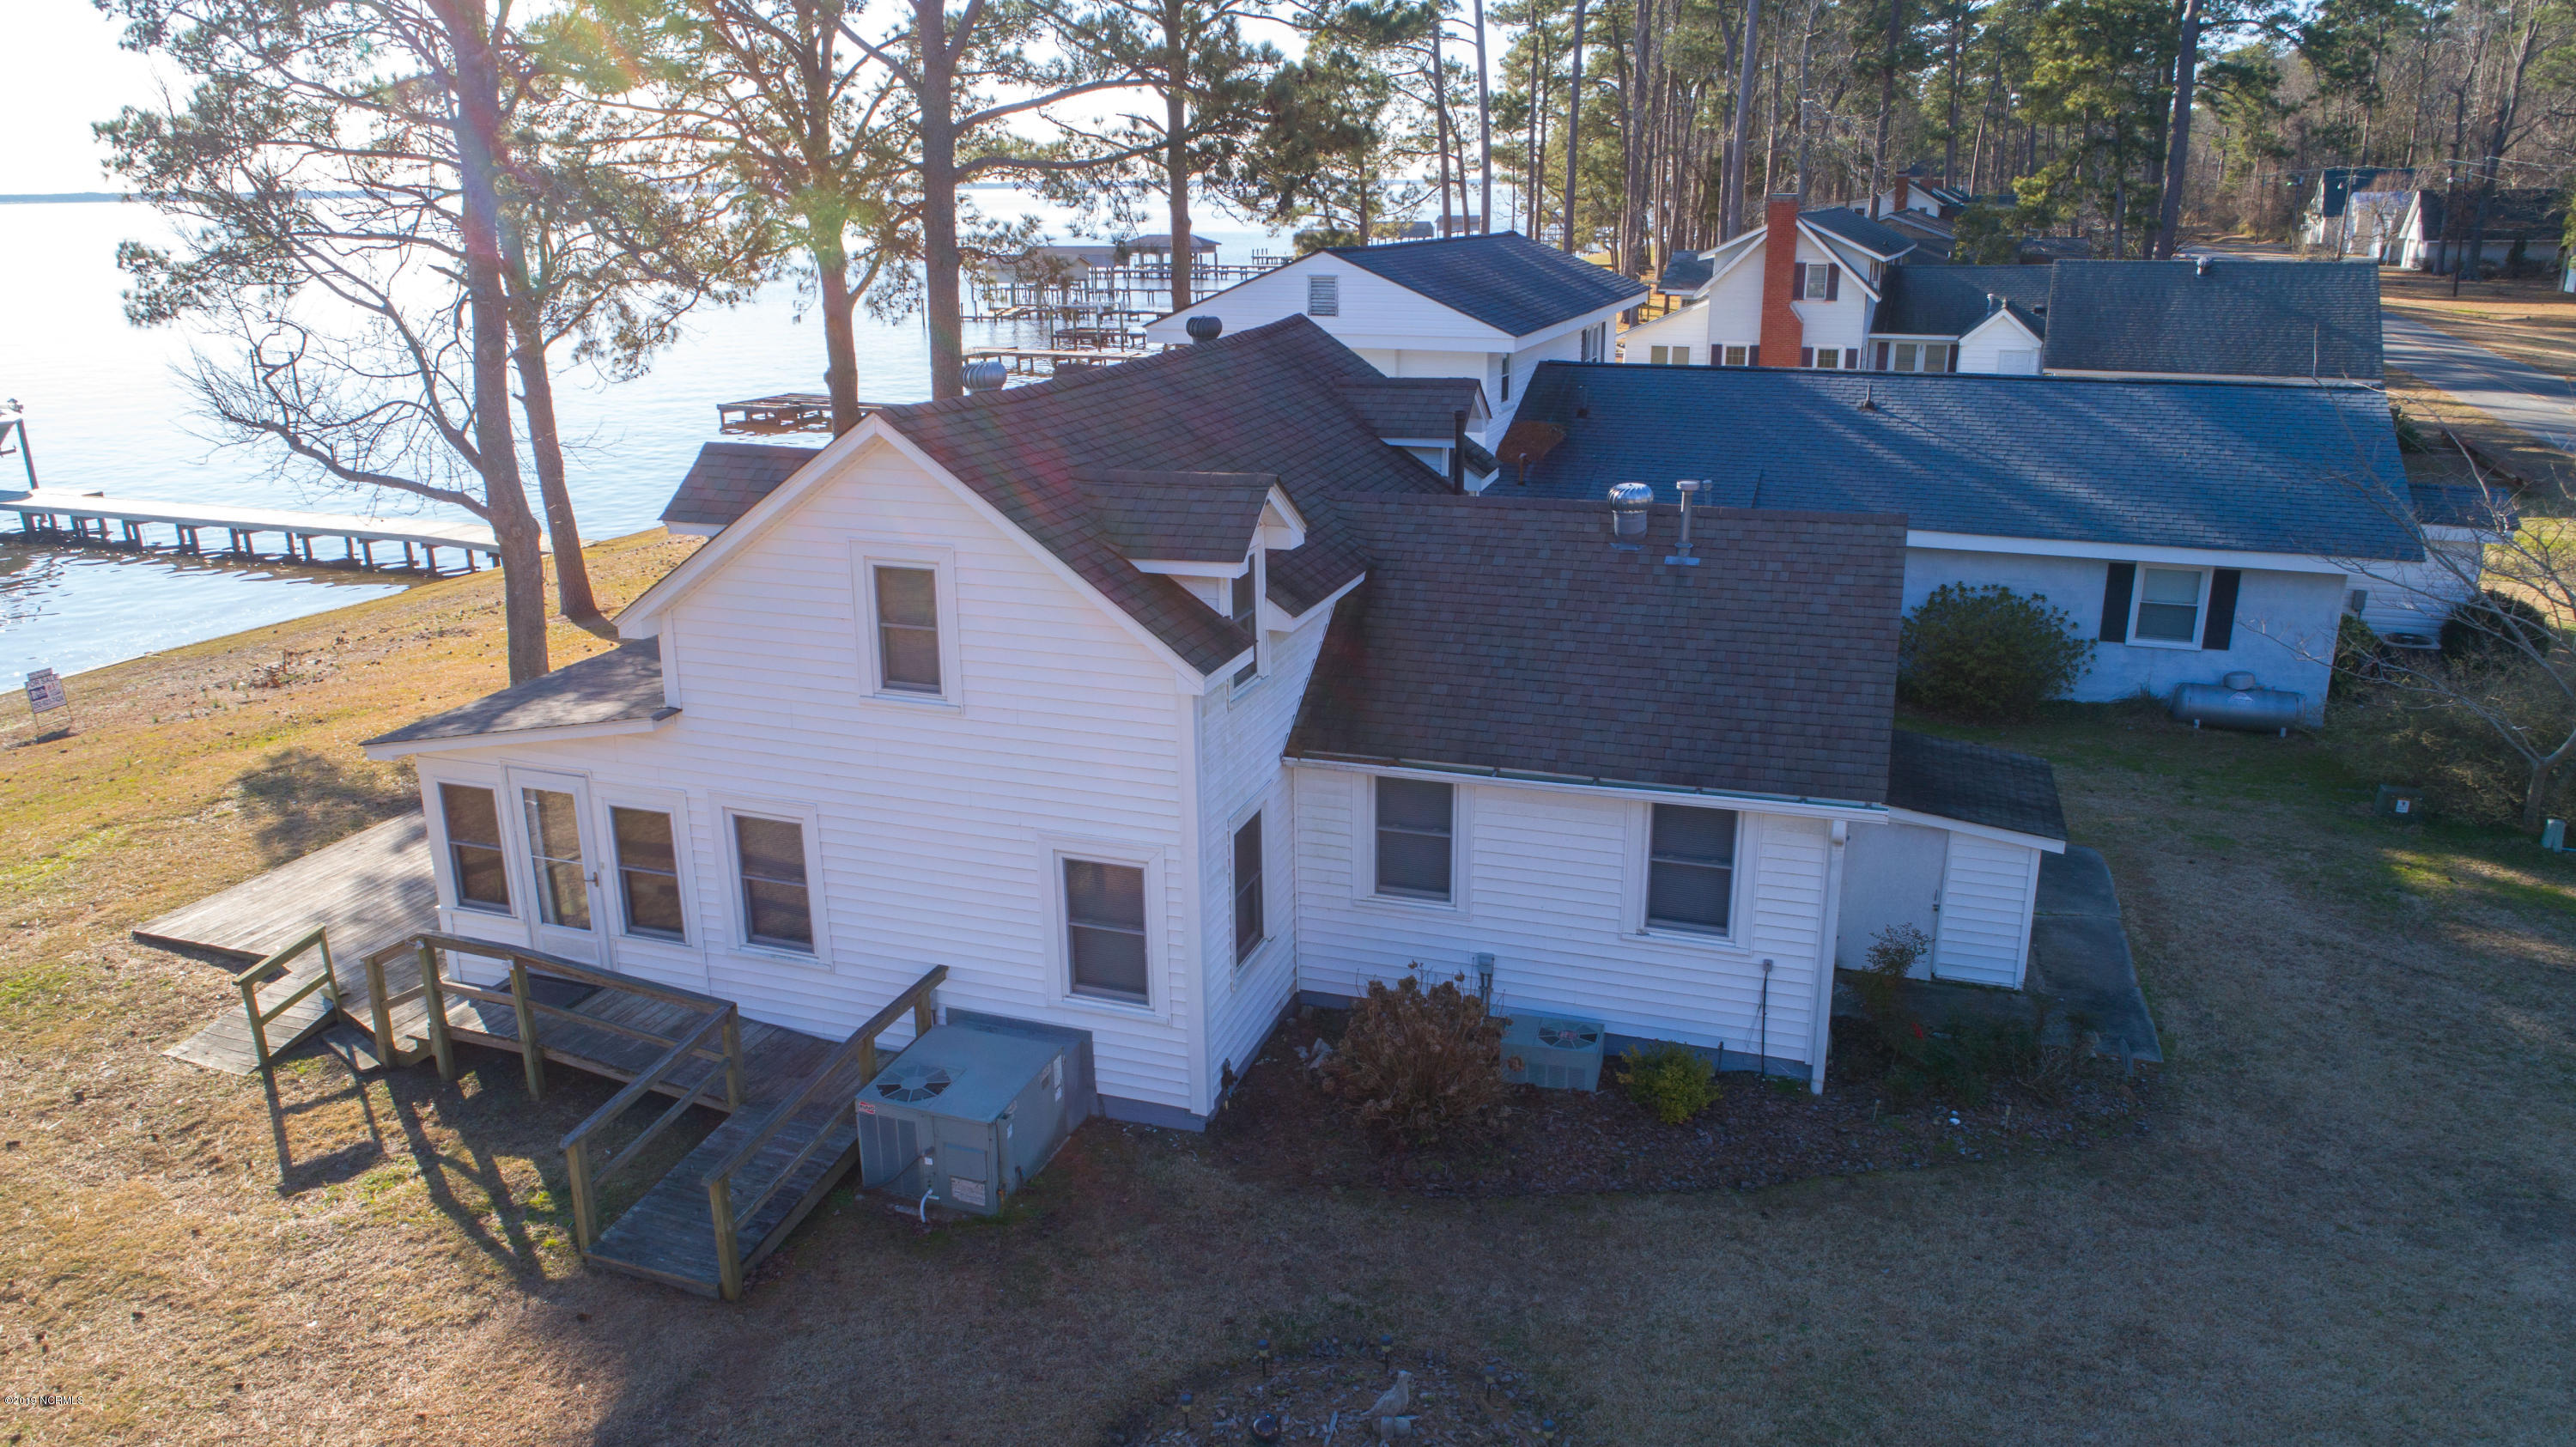 Property for sale at 545 Island View, Bath,  North Carolina 27808